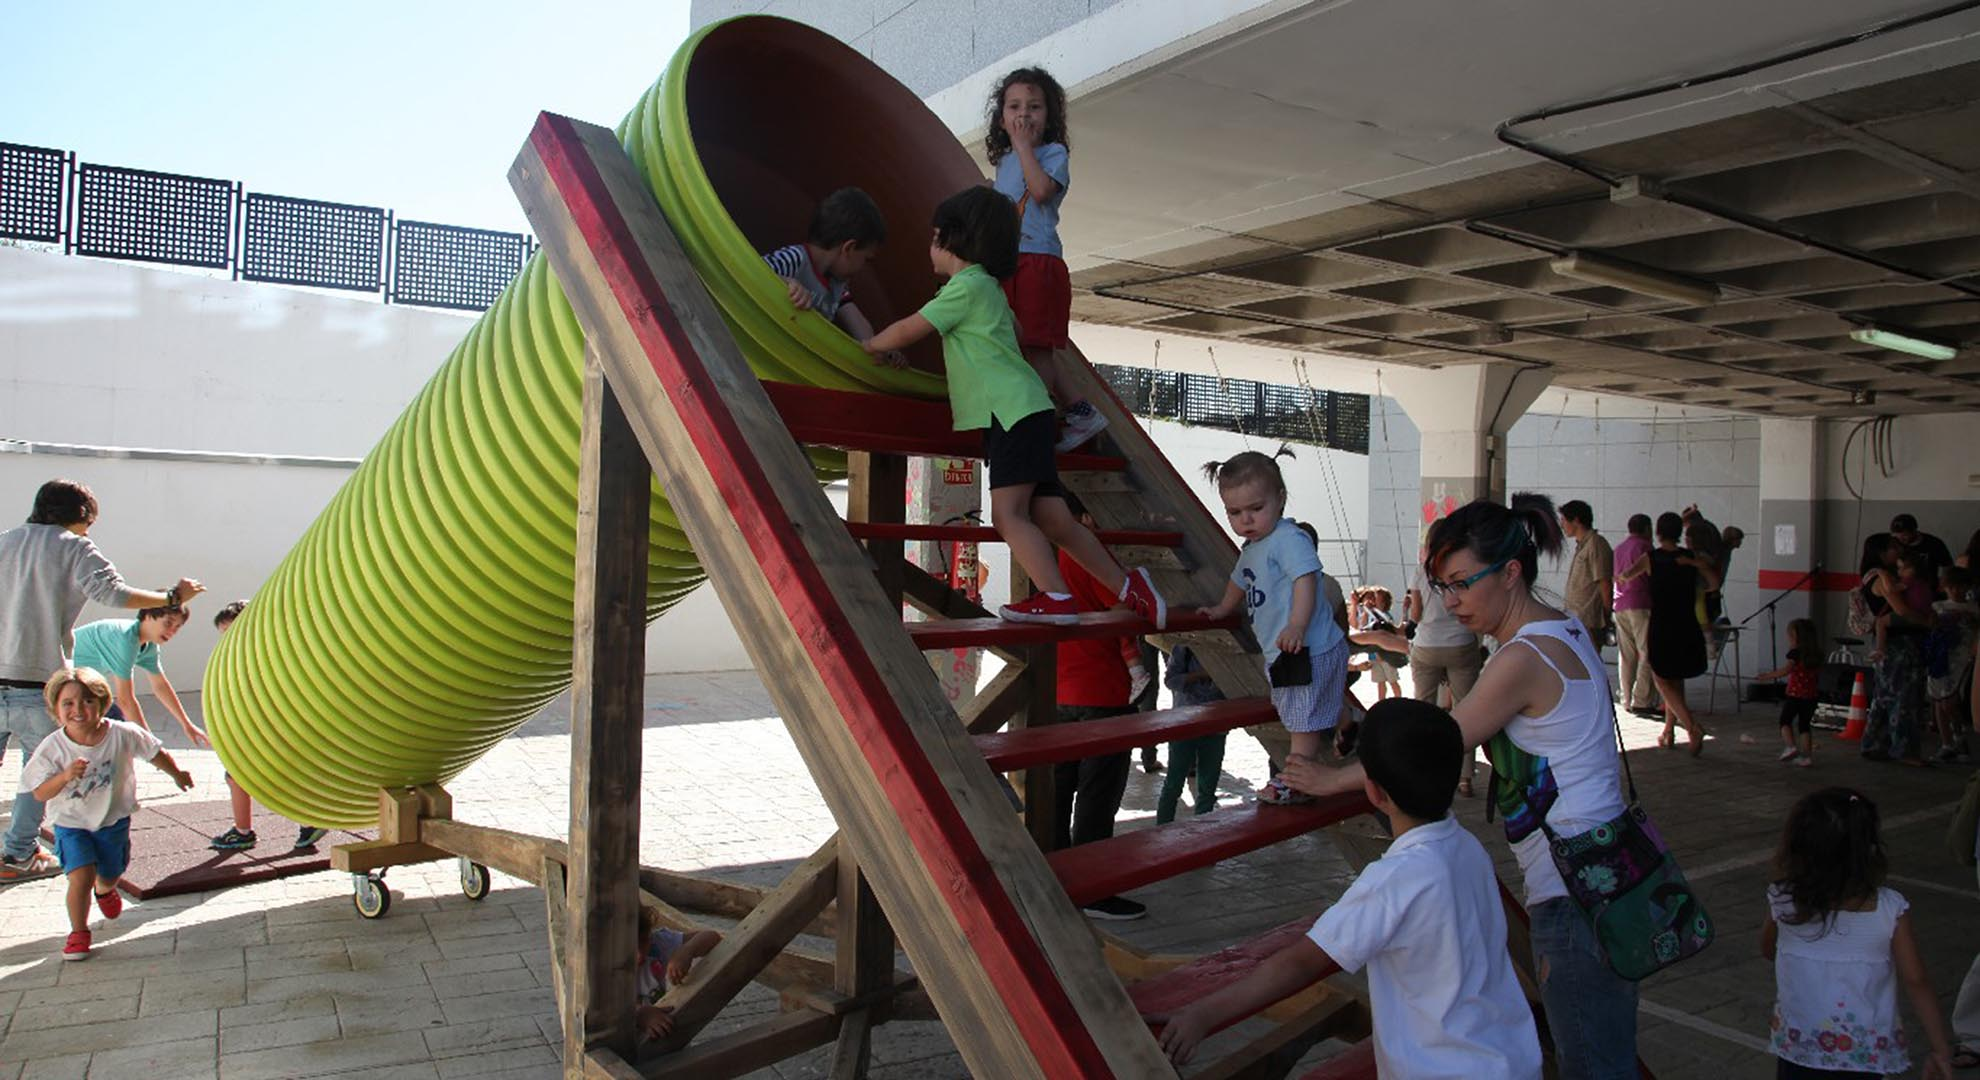 A giant pipe becomes a fun slide at the Ideo School, which is an original way of facing ecological transition